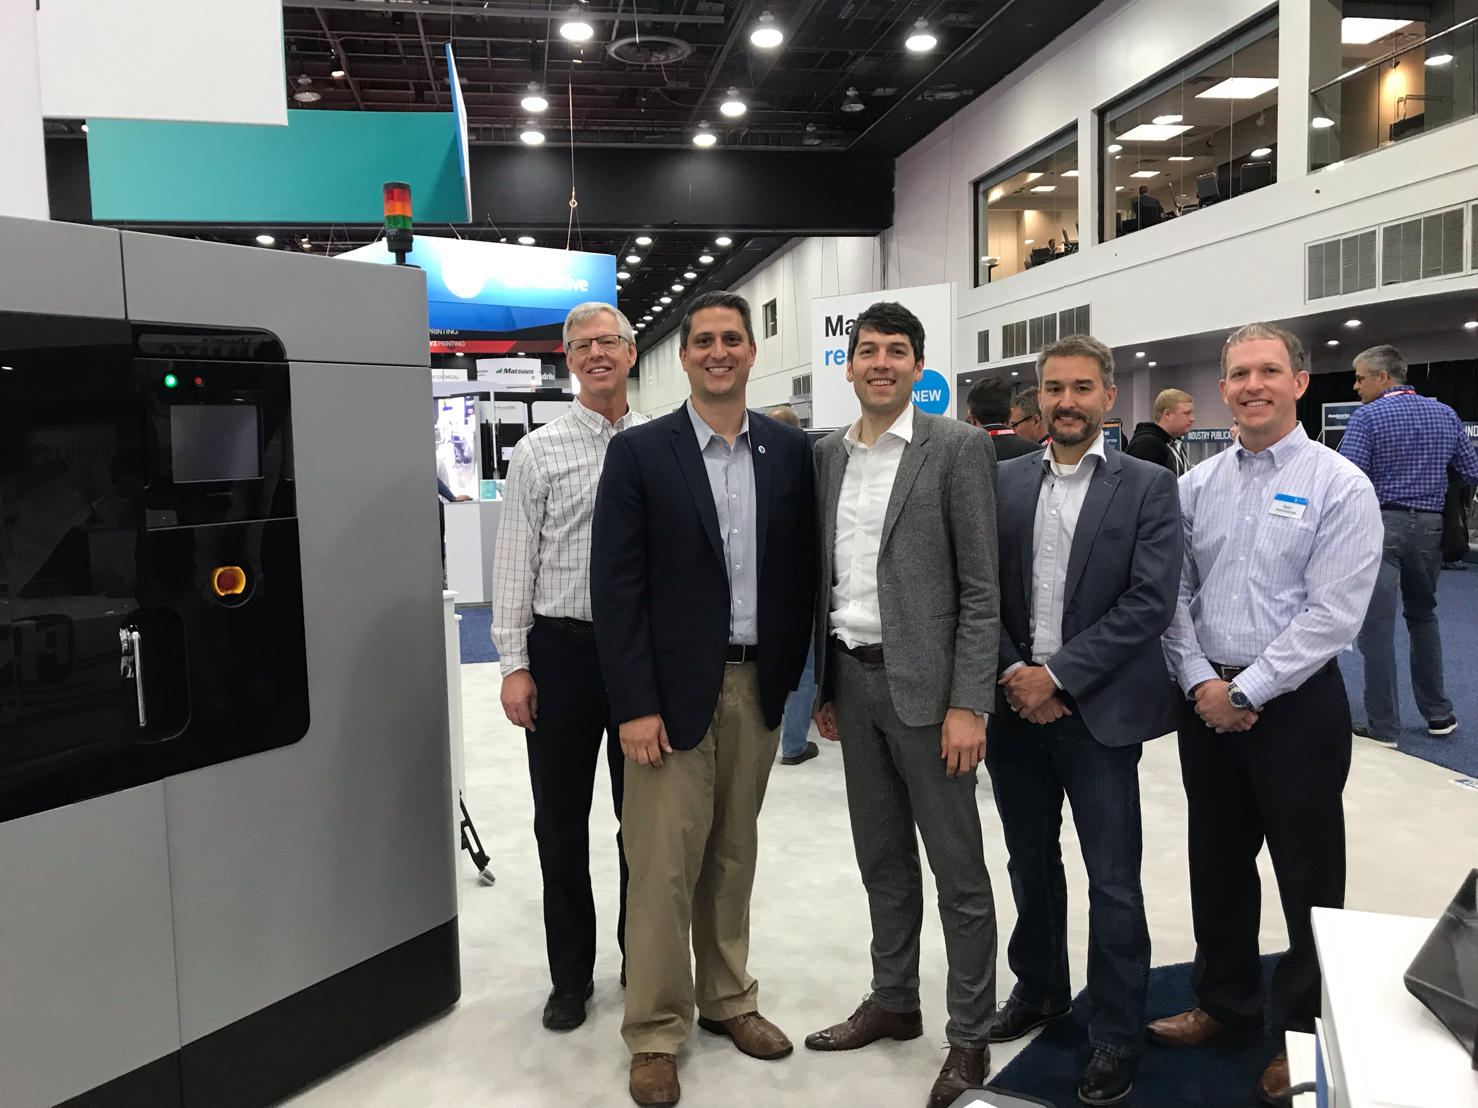 Solvay to develop high-performance materials for Stratasys FDM 3D printers